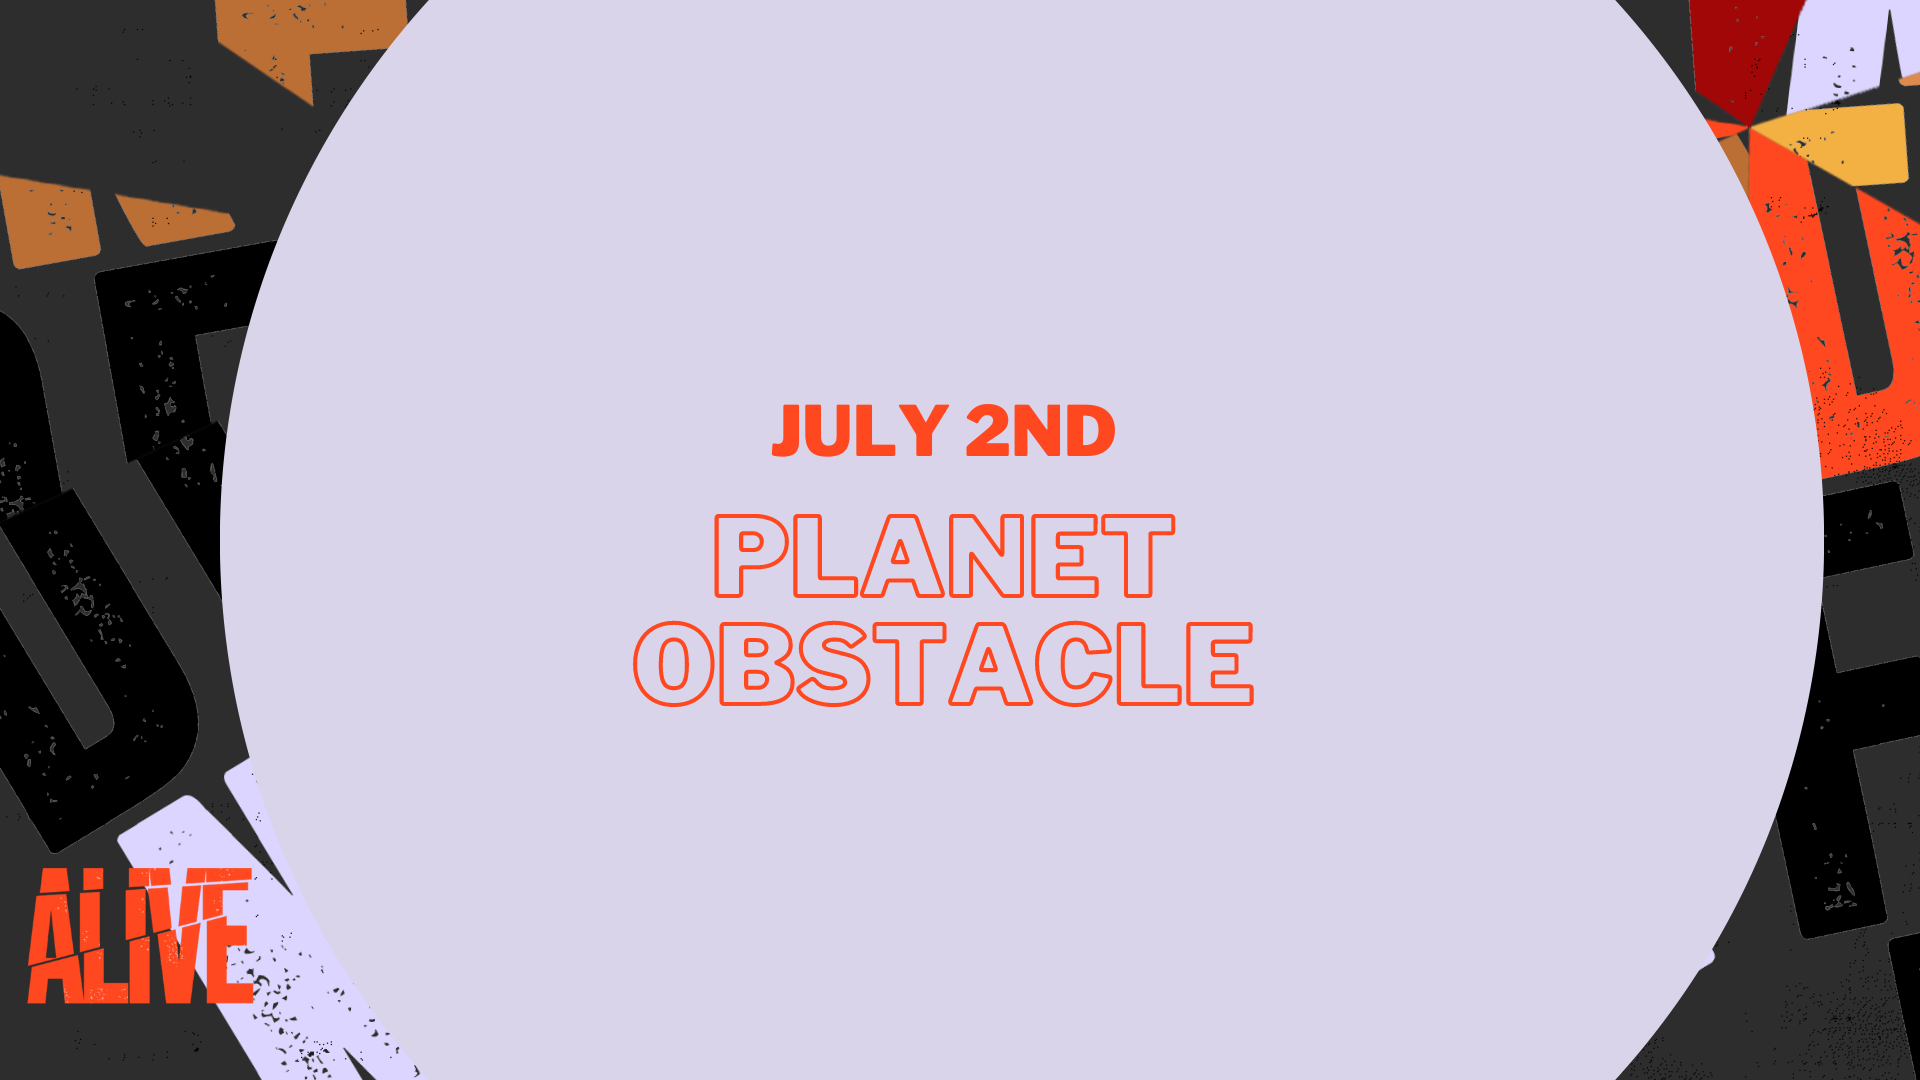 Planet Obstacle 2021 image